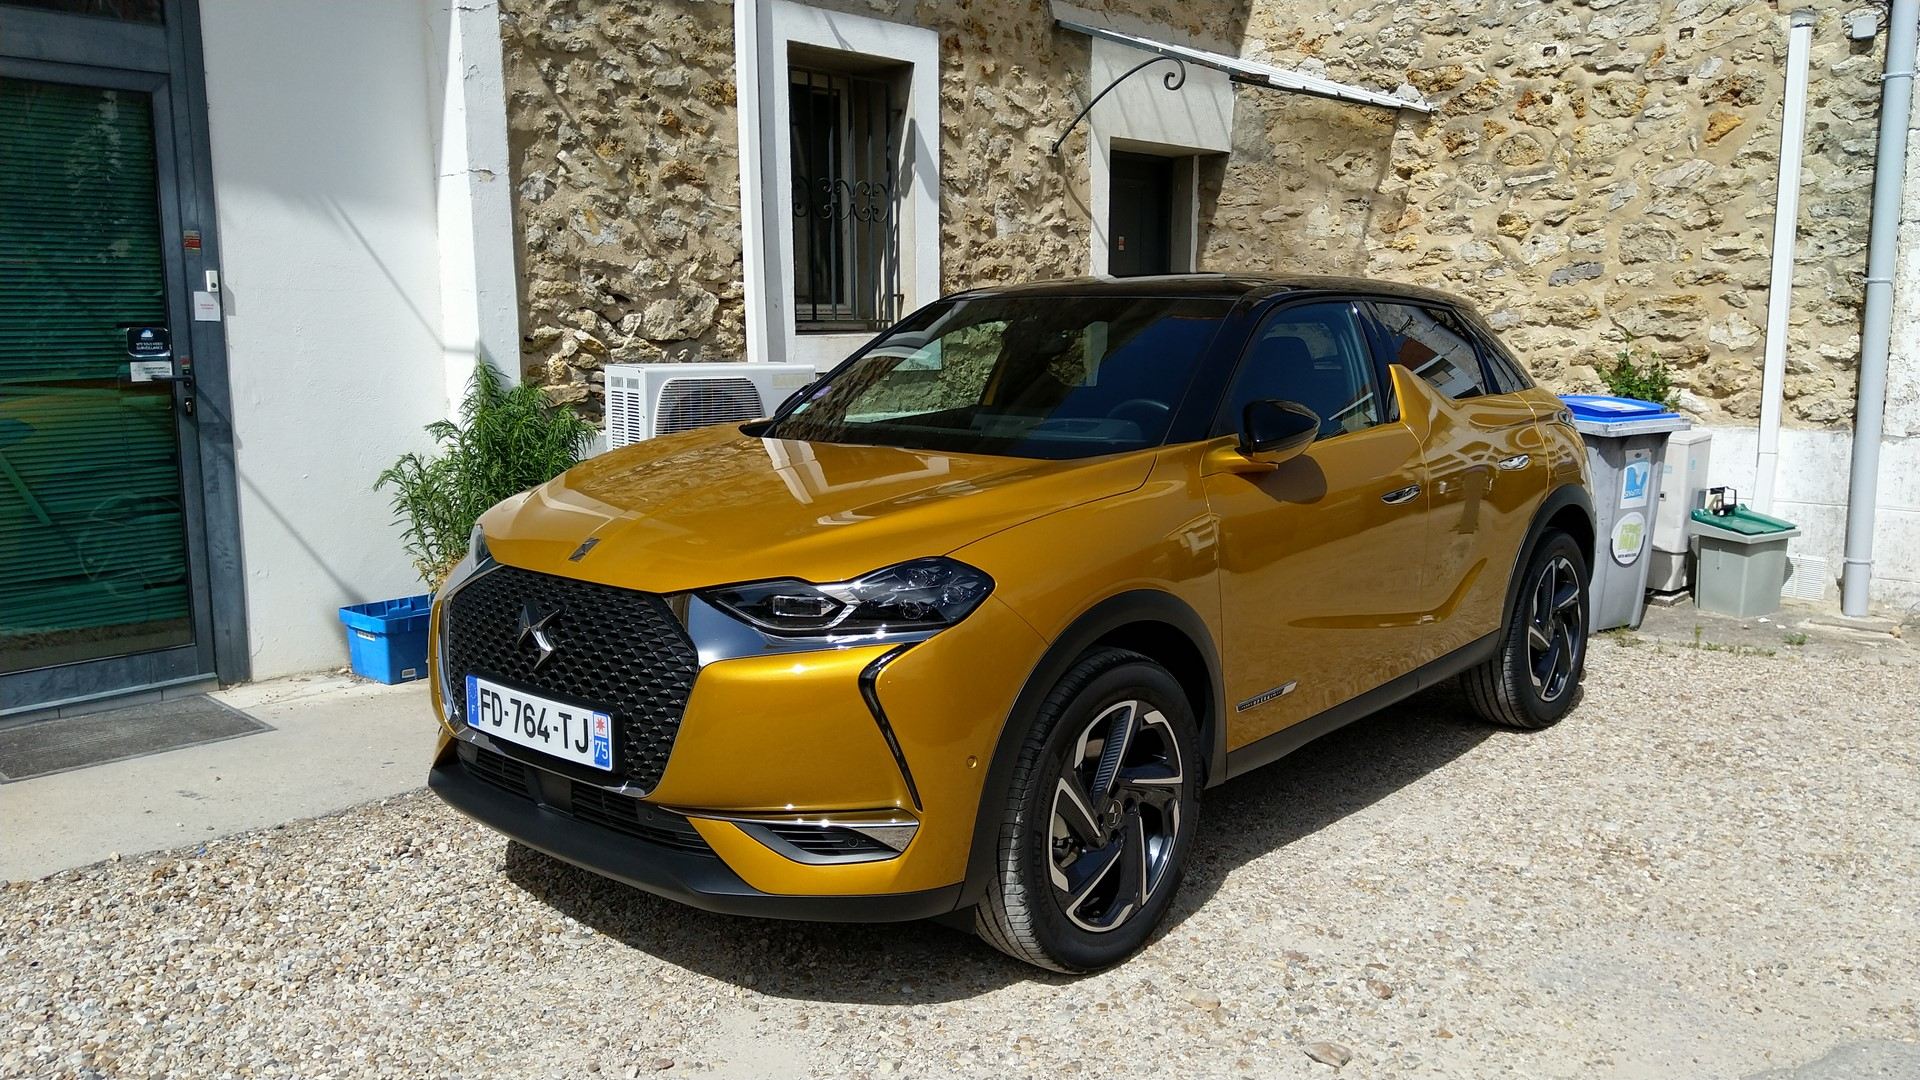 2018 - [DS Automobiles] DS 3 Crossback (D34) - Page 39 IMG_20190628_162018